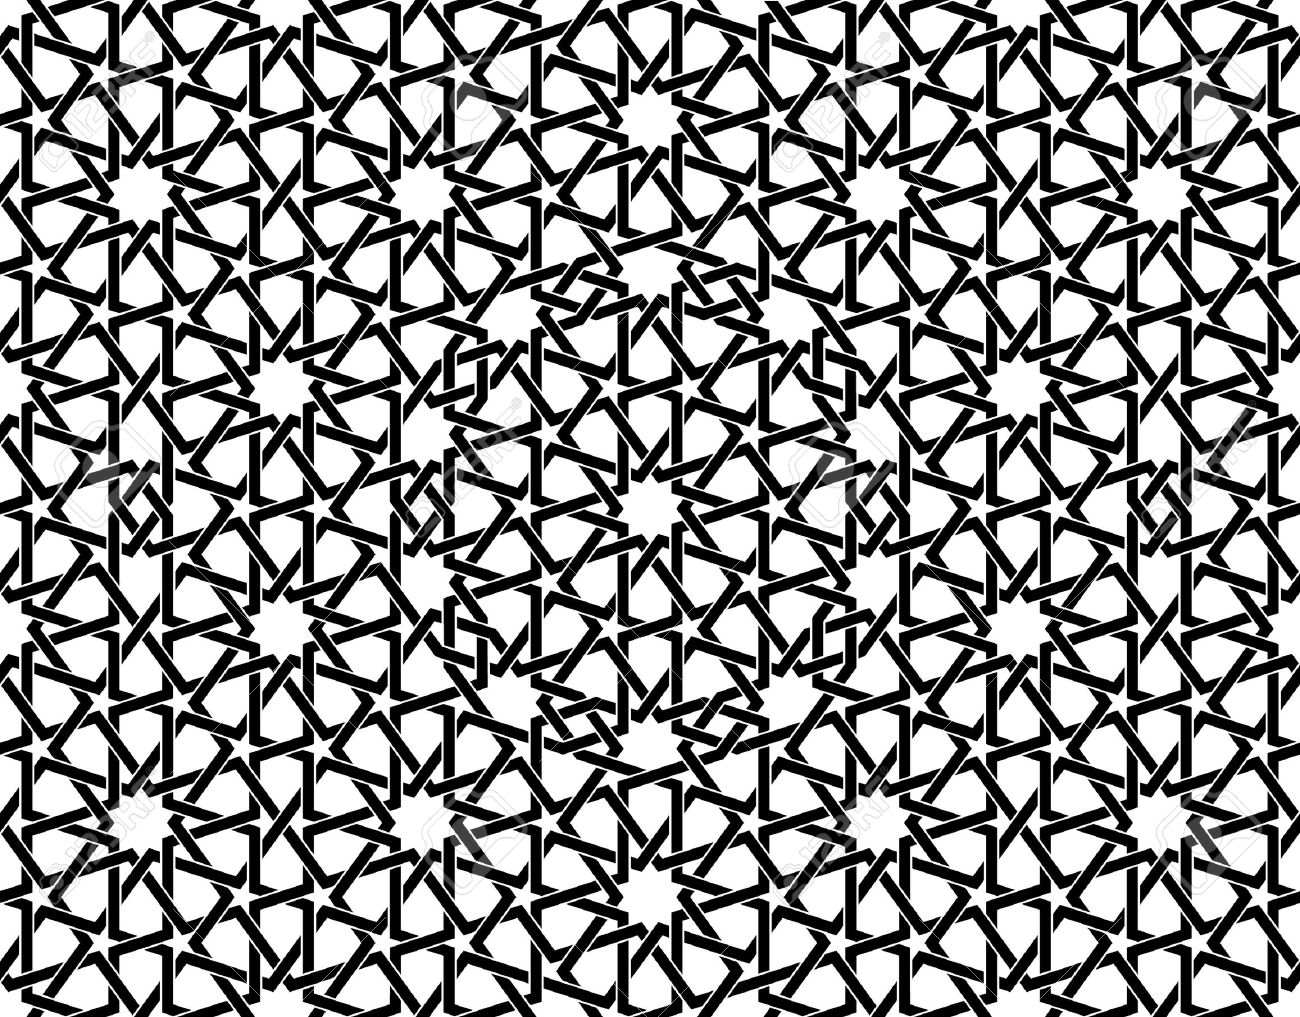 Moroccan geometric pattern royalty free stock photos image 13547078 - This Moroccan Pattern Is Used Moroccan Pattern Black And White